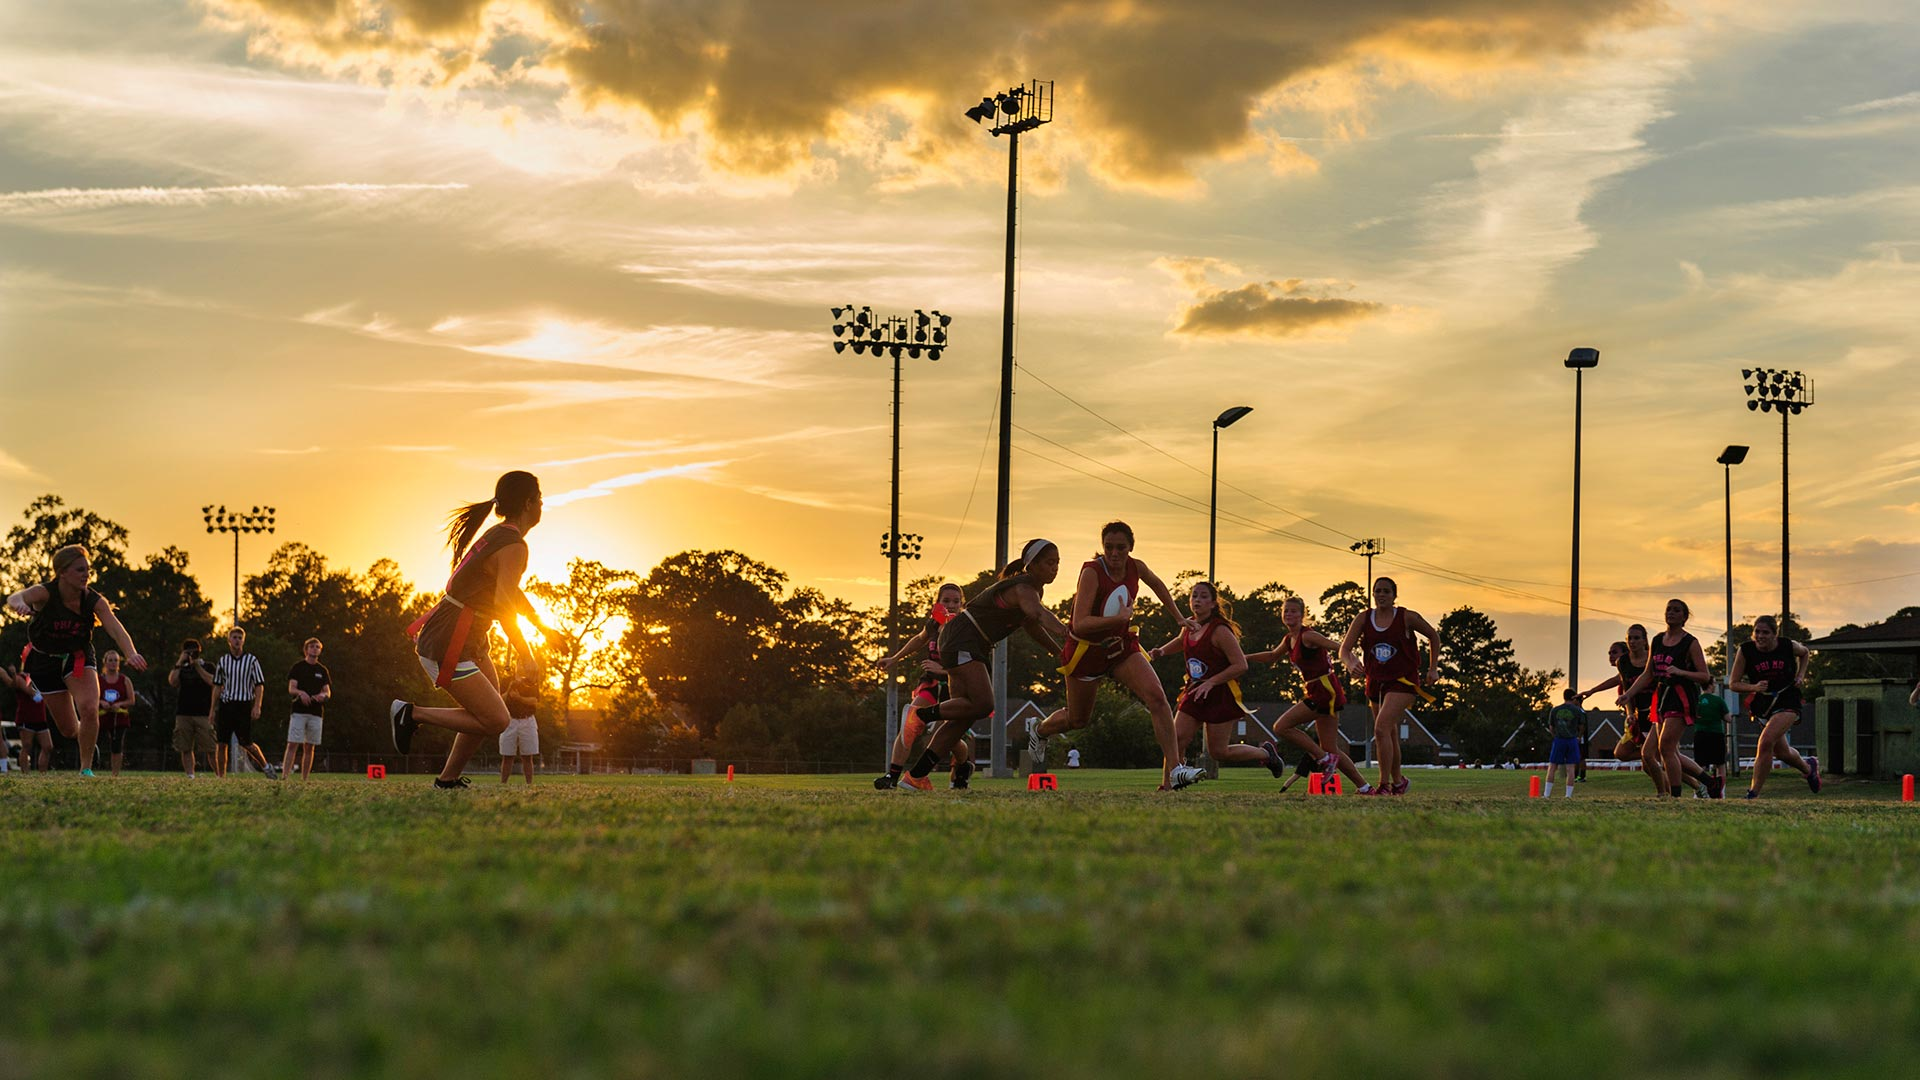 Students playing flag football at sunset